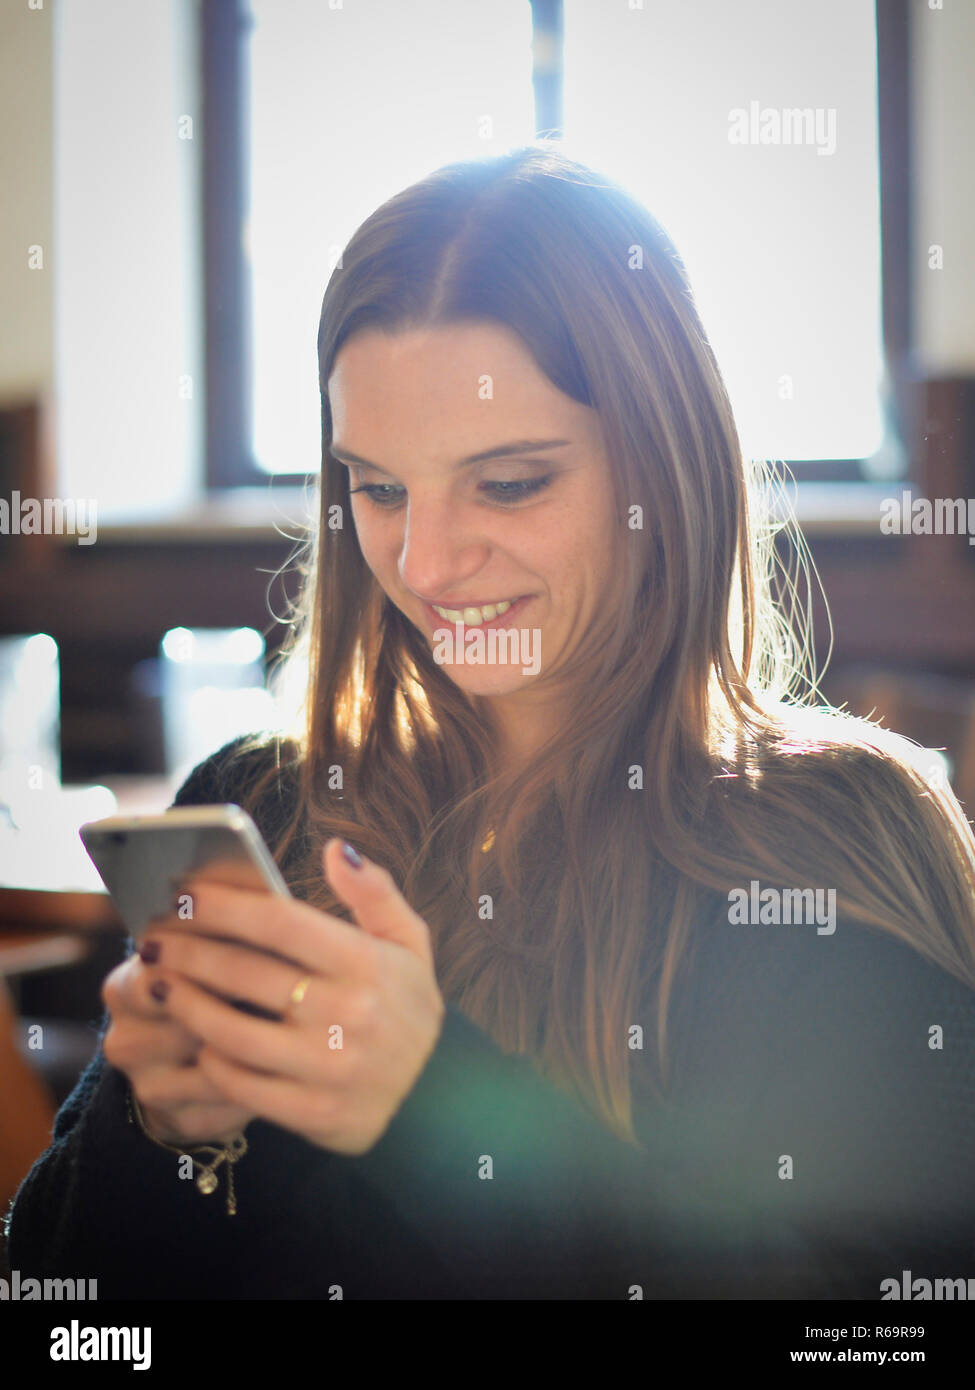 Young woman with smartphone, laughs, Portrait, Café, Stuttgart, Baden-Württemberg, Germany - Stock Image